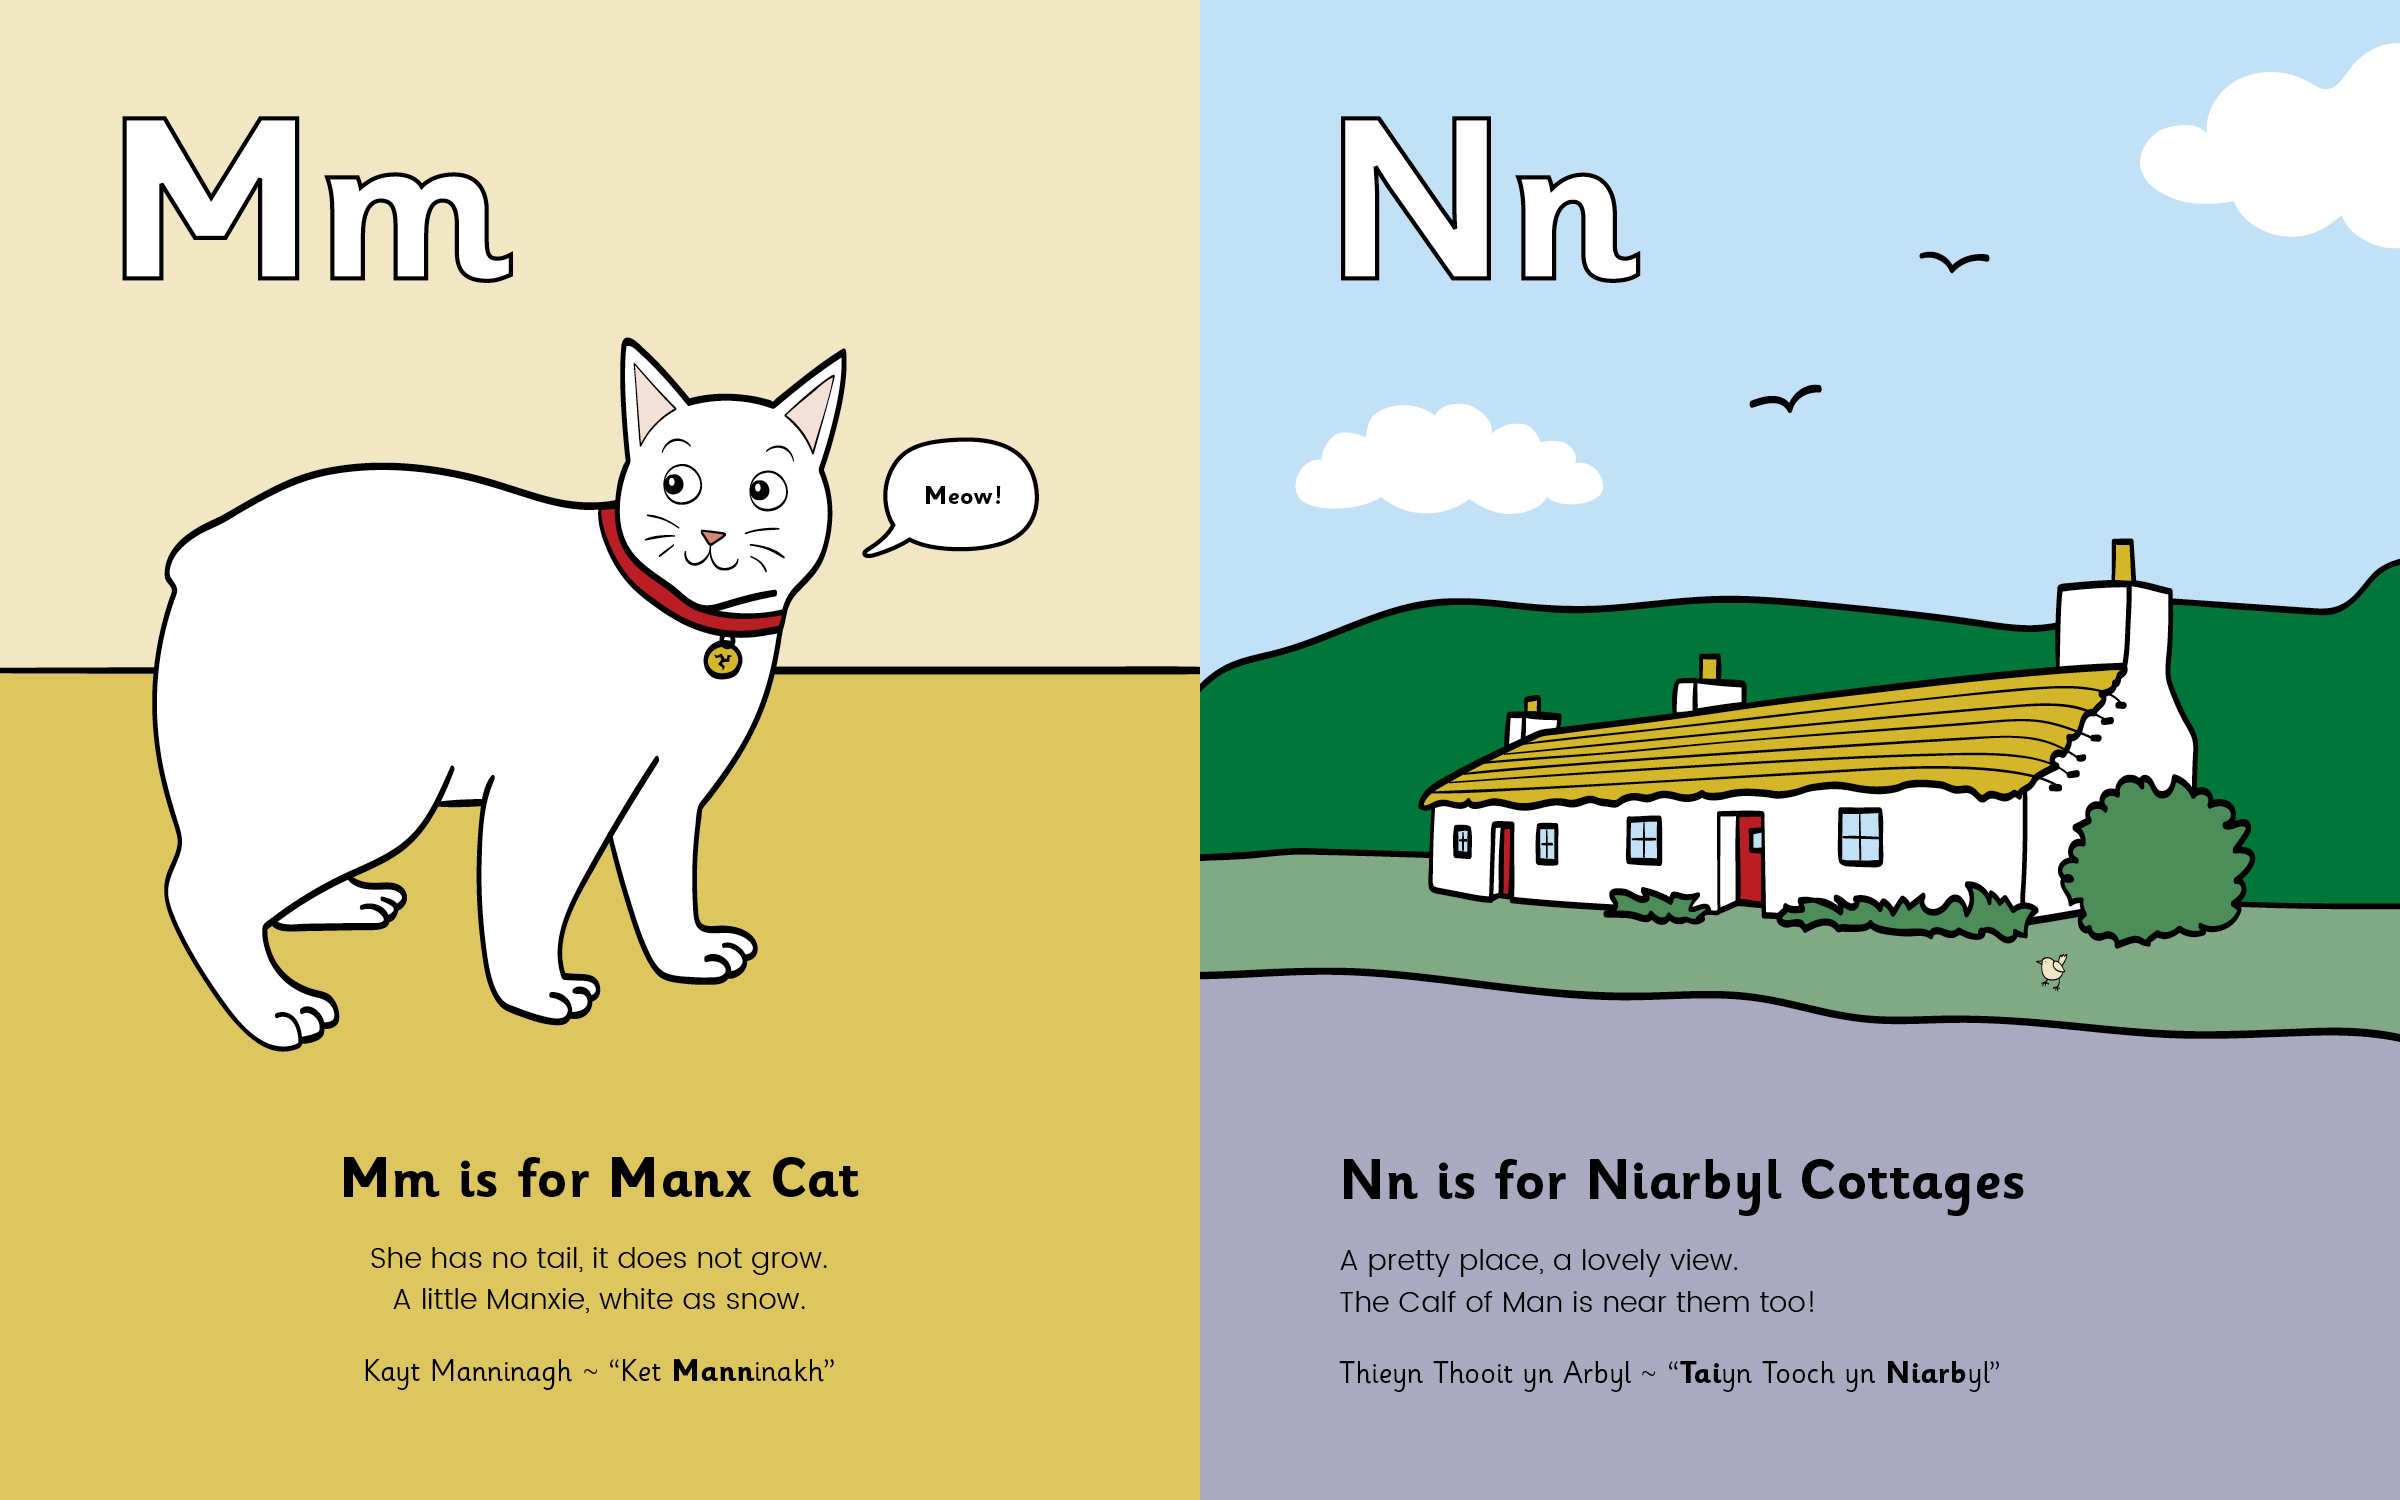 Mm is for Manx Cat, Nn is for Niarbyl Cottages